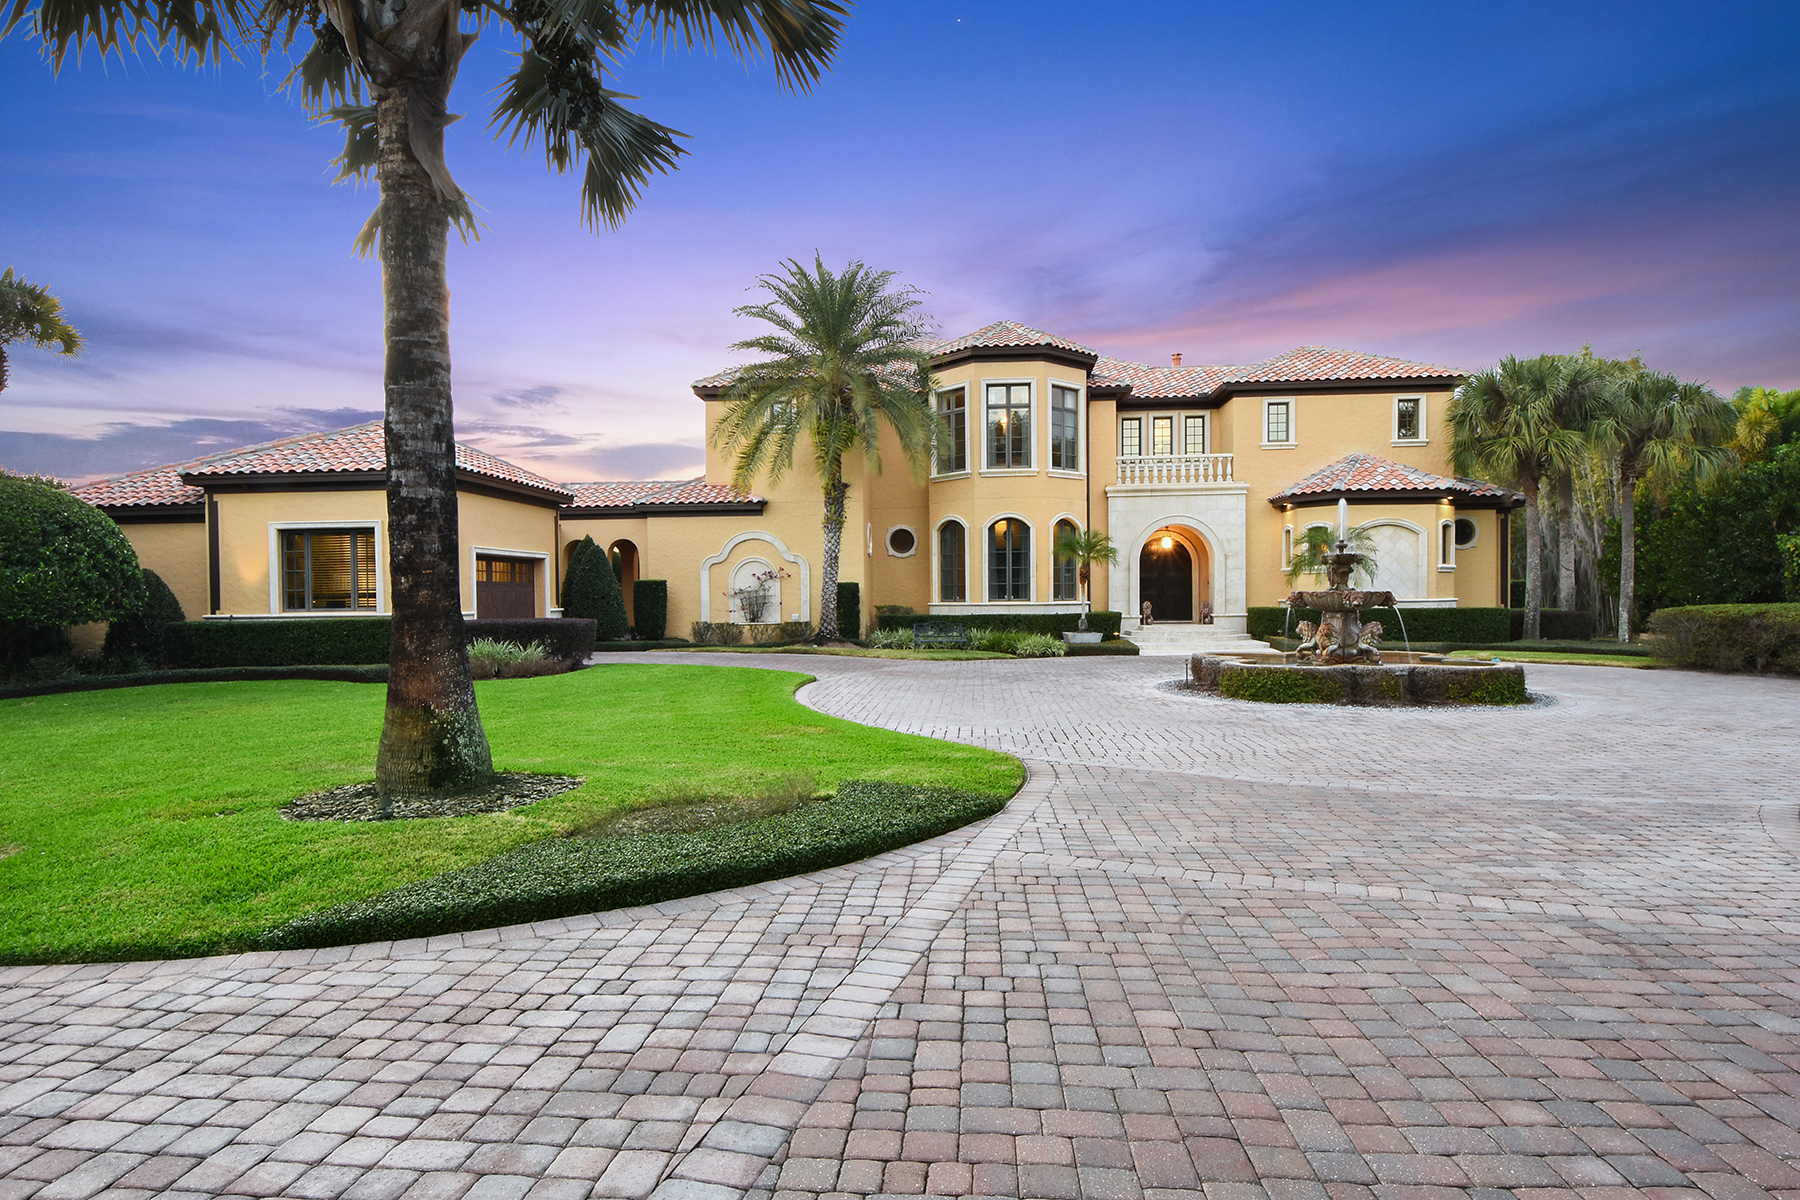 Single Family Homes for Sale at Windermere-Orlando 11103 Bridge House Rd Windermere, Florida 34786 United States